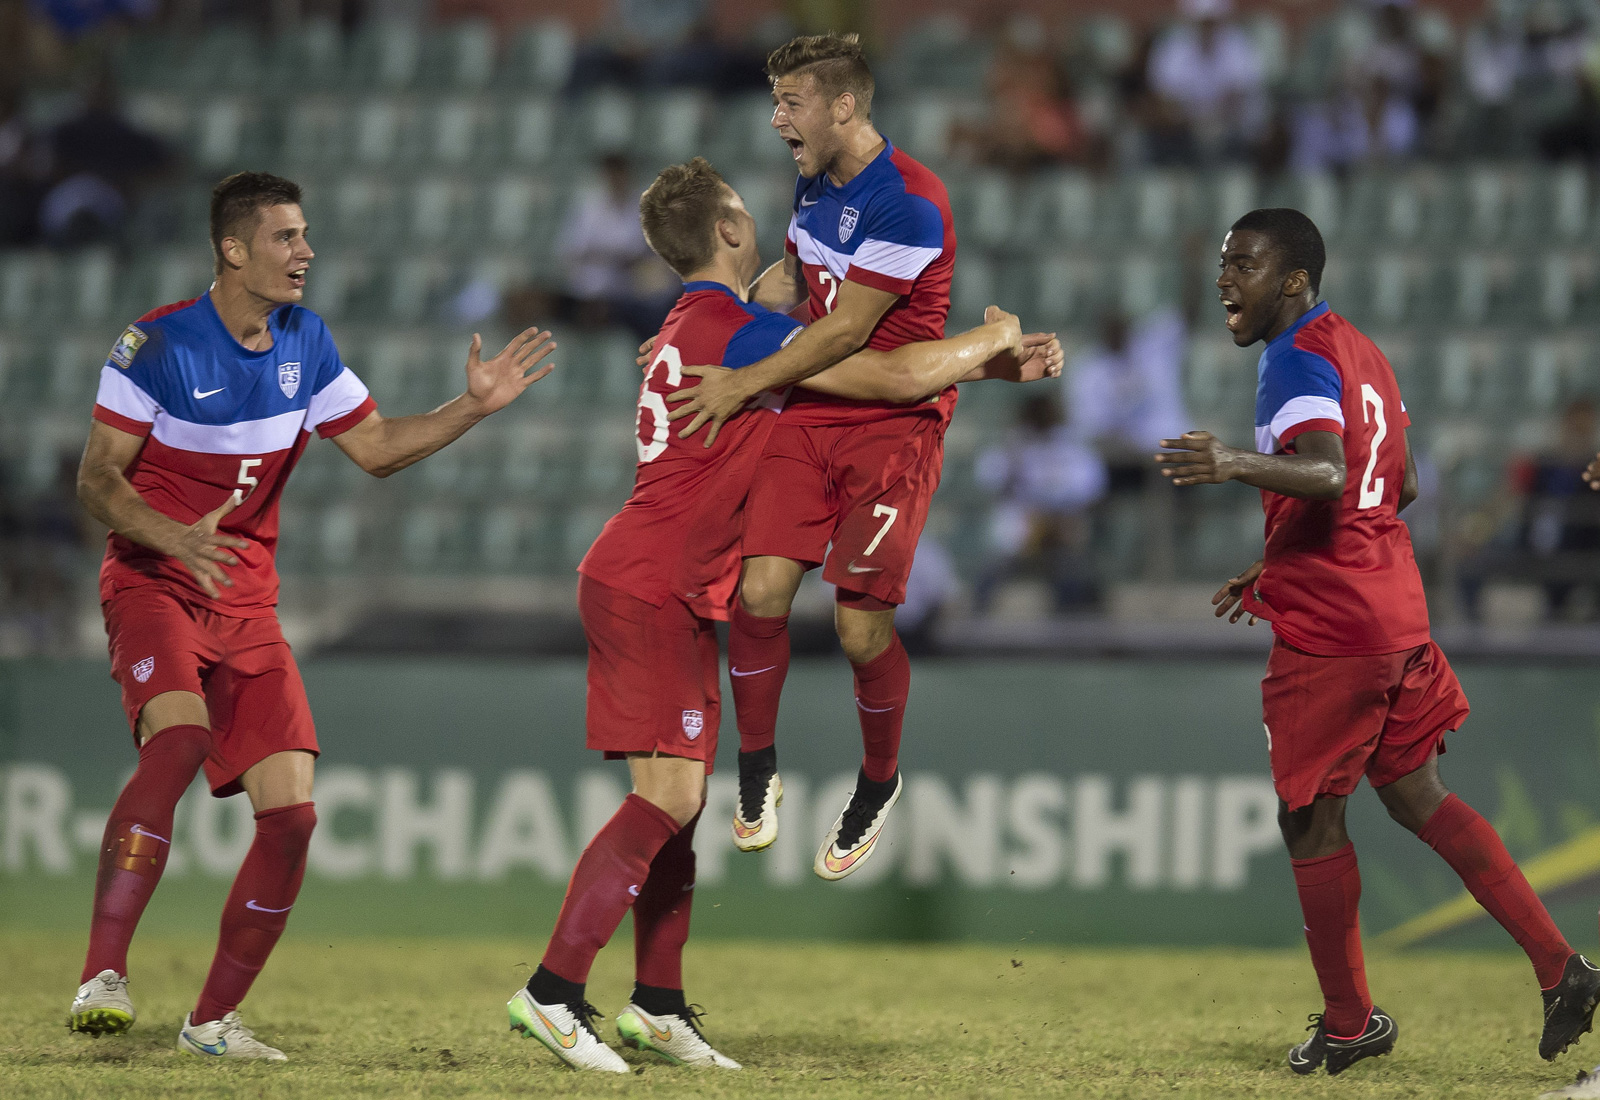 Paul Arriola (7) celebrates his goal in a World Cup qualifying playoff match vs. El Salvador. The U.S. U-20s cemented their place in the World Cup with a 2-0 win. They drew host New Zealand, Ukraine and Myanmar in their summer group.